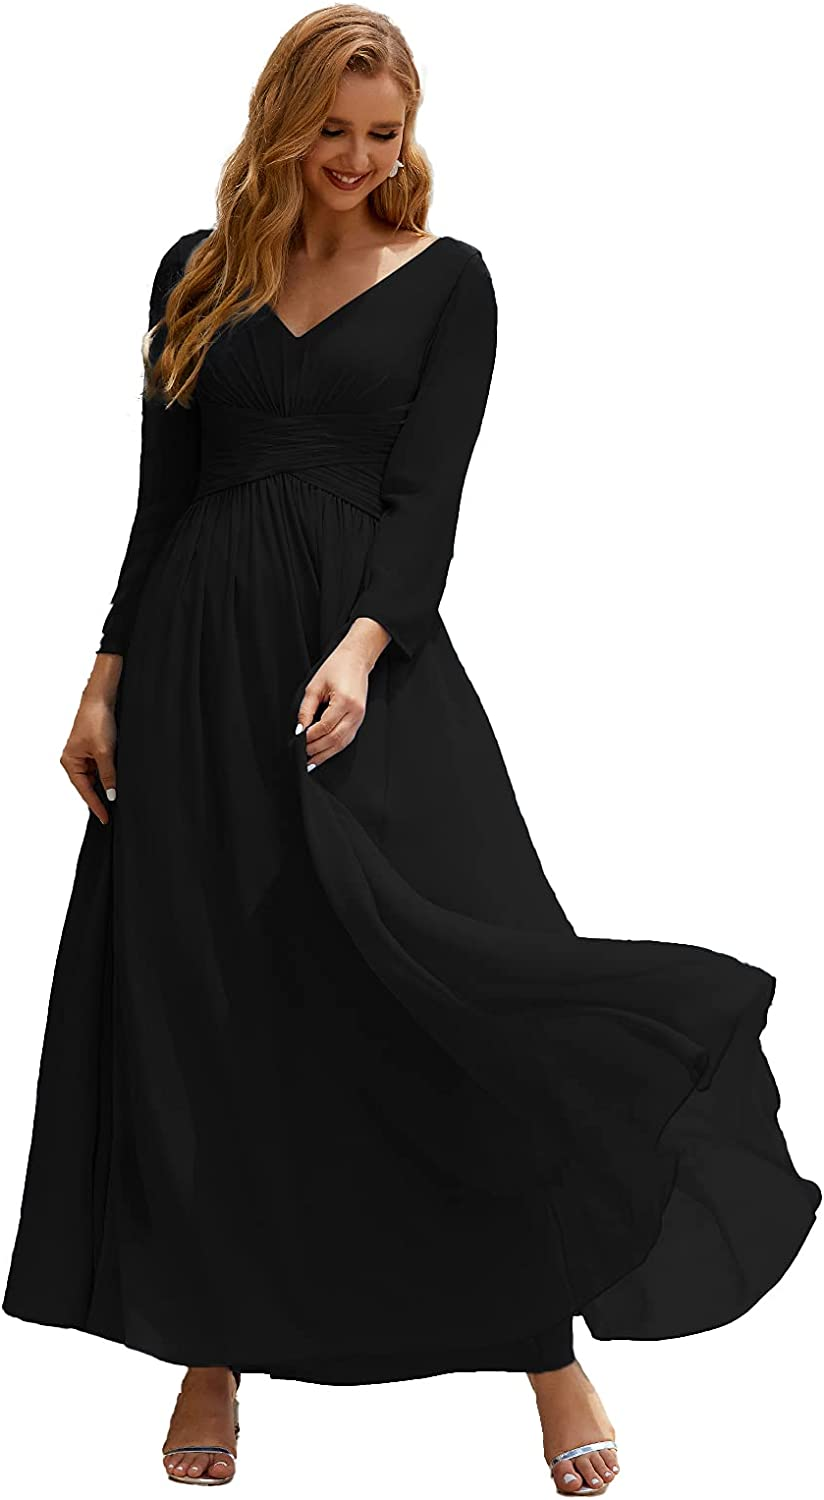 Numbersea V-Neck Chiffon Bridesmaid Dresses Long Sleeve Mother of The Bride Dress for Women Formal Party Wedding Guests